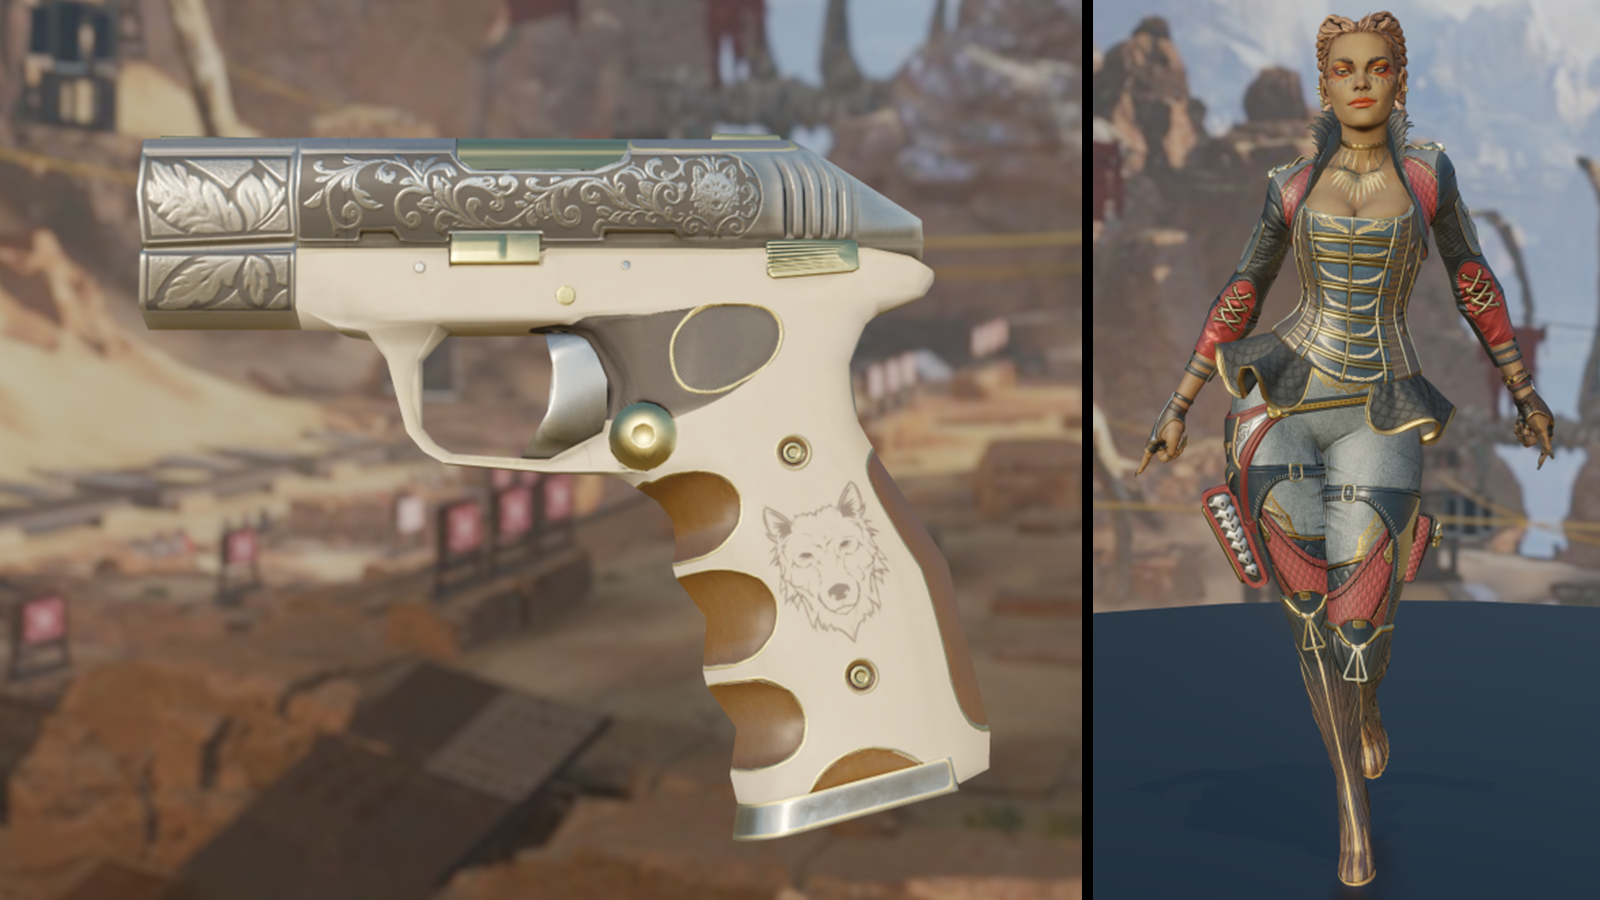 The new Summer of Plunder pistol and character skins for Loba.